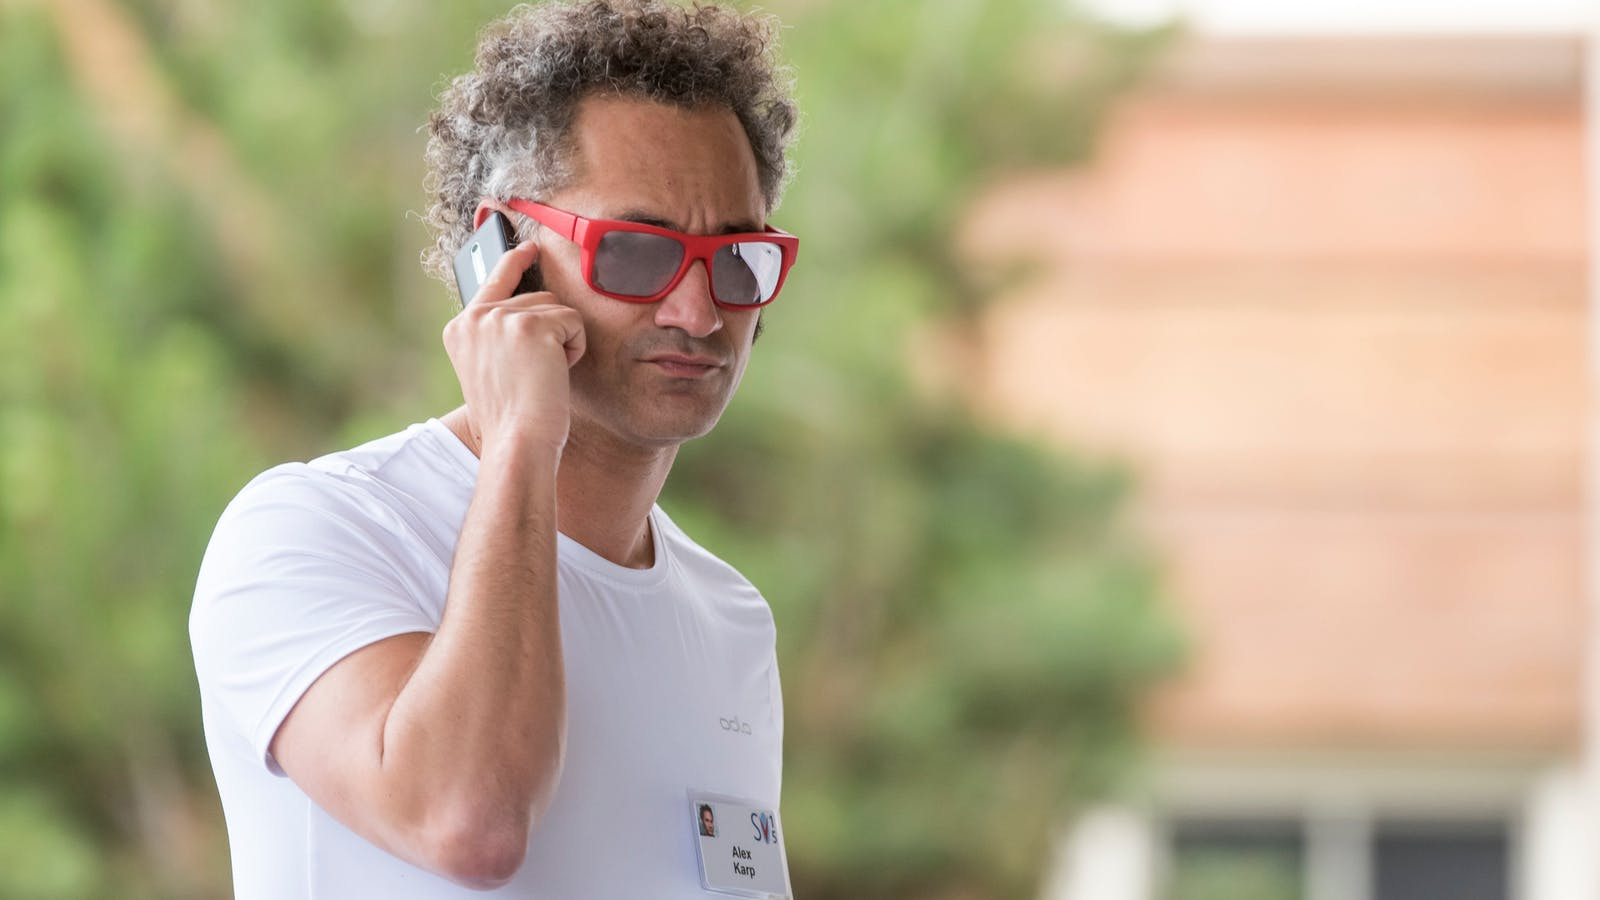 Palantir CEO Alexandar Karp. Photo by Bloomberg.